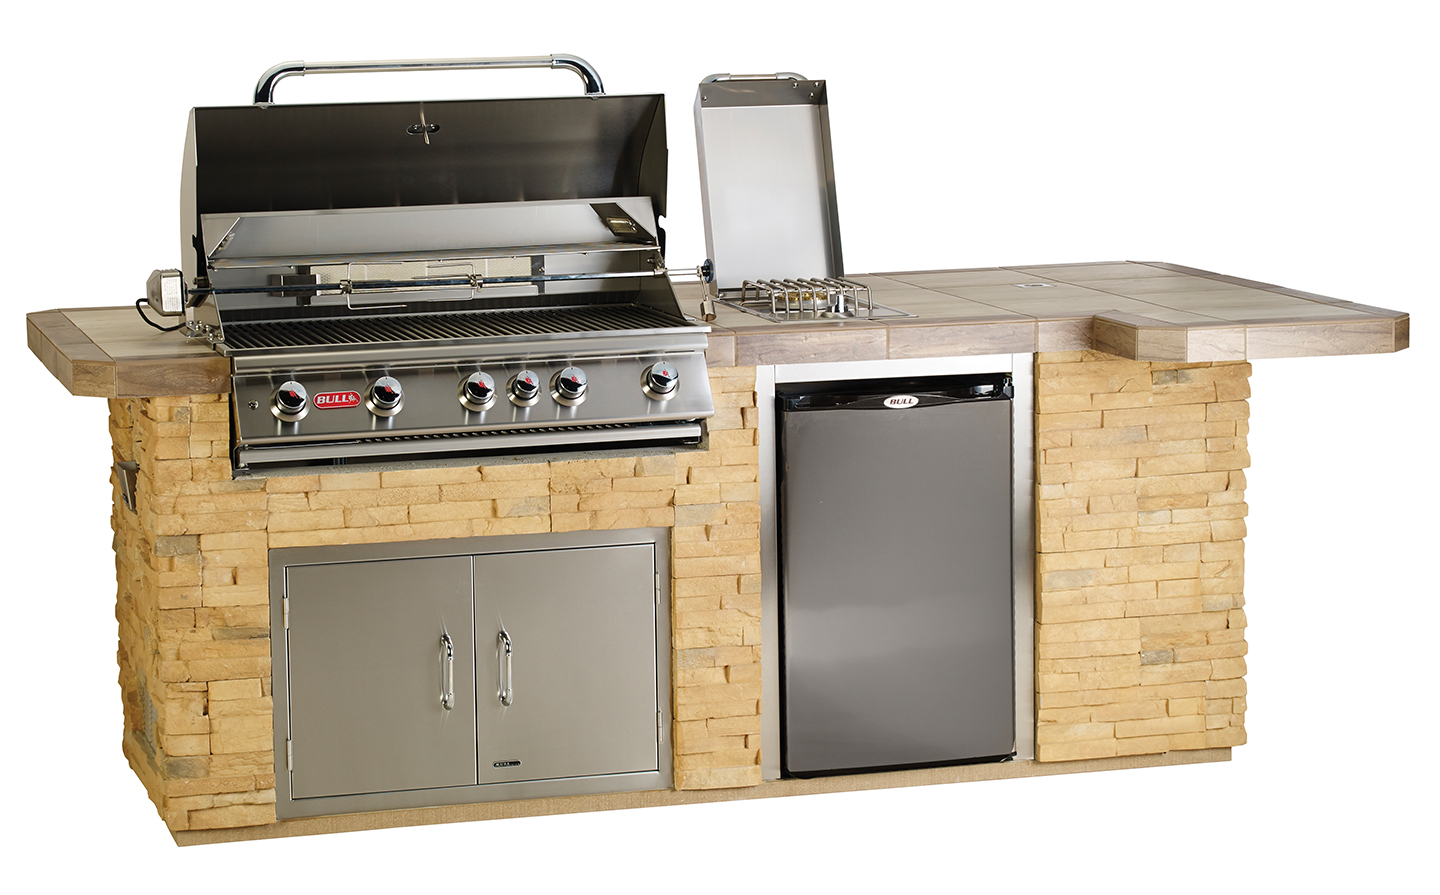 Best in Backyards Announces New Partnership with Bull Outdoor Products, Featuring Outdoor Kitchens